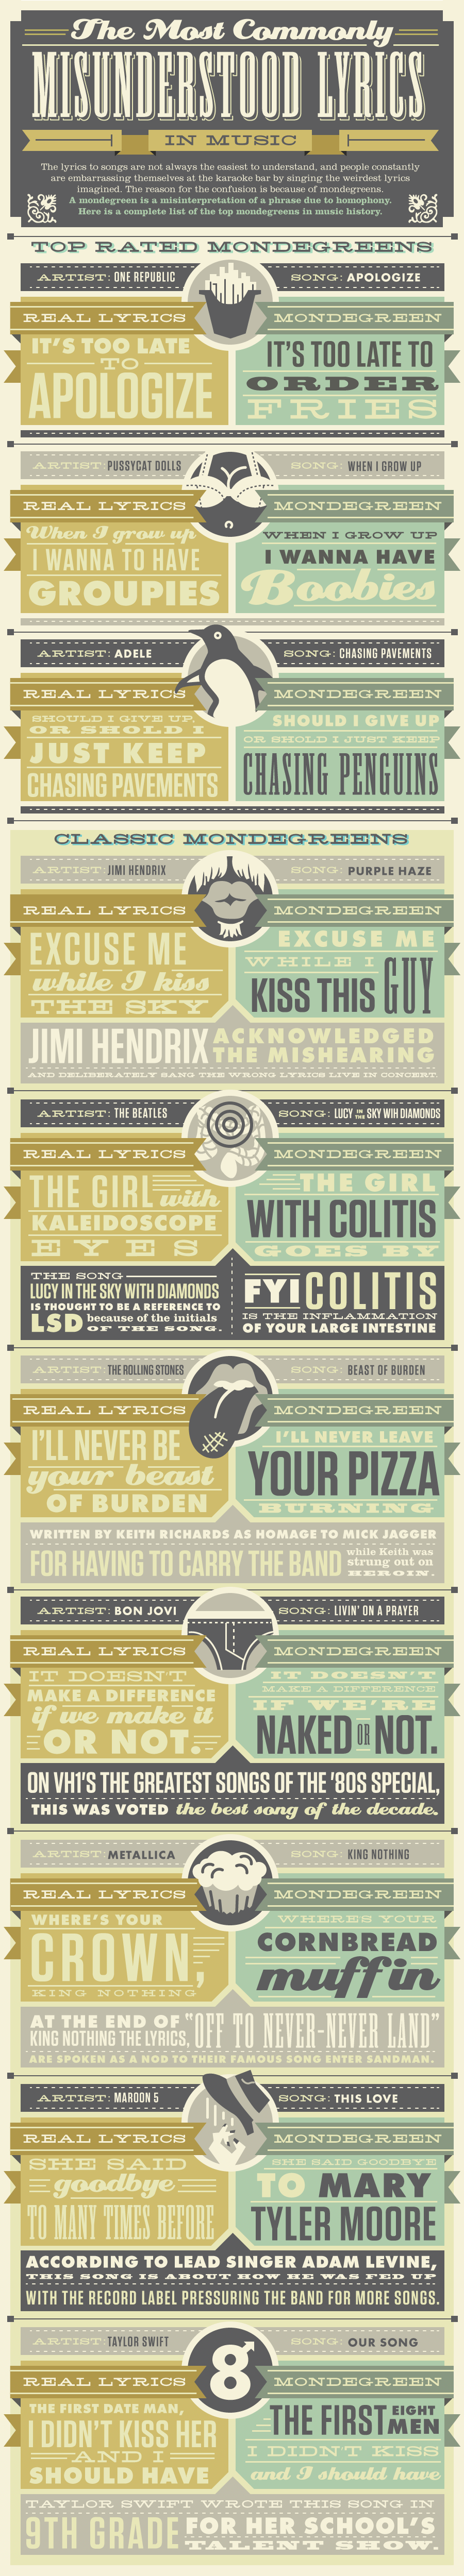 Infographic: Top Most Commonly Misunderstood Lyrics in Music